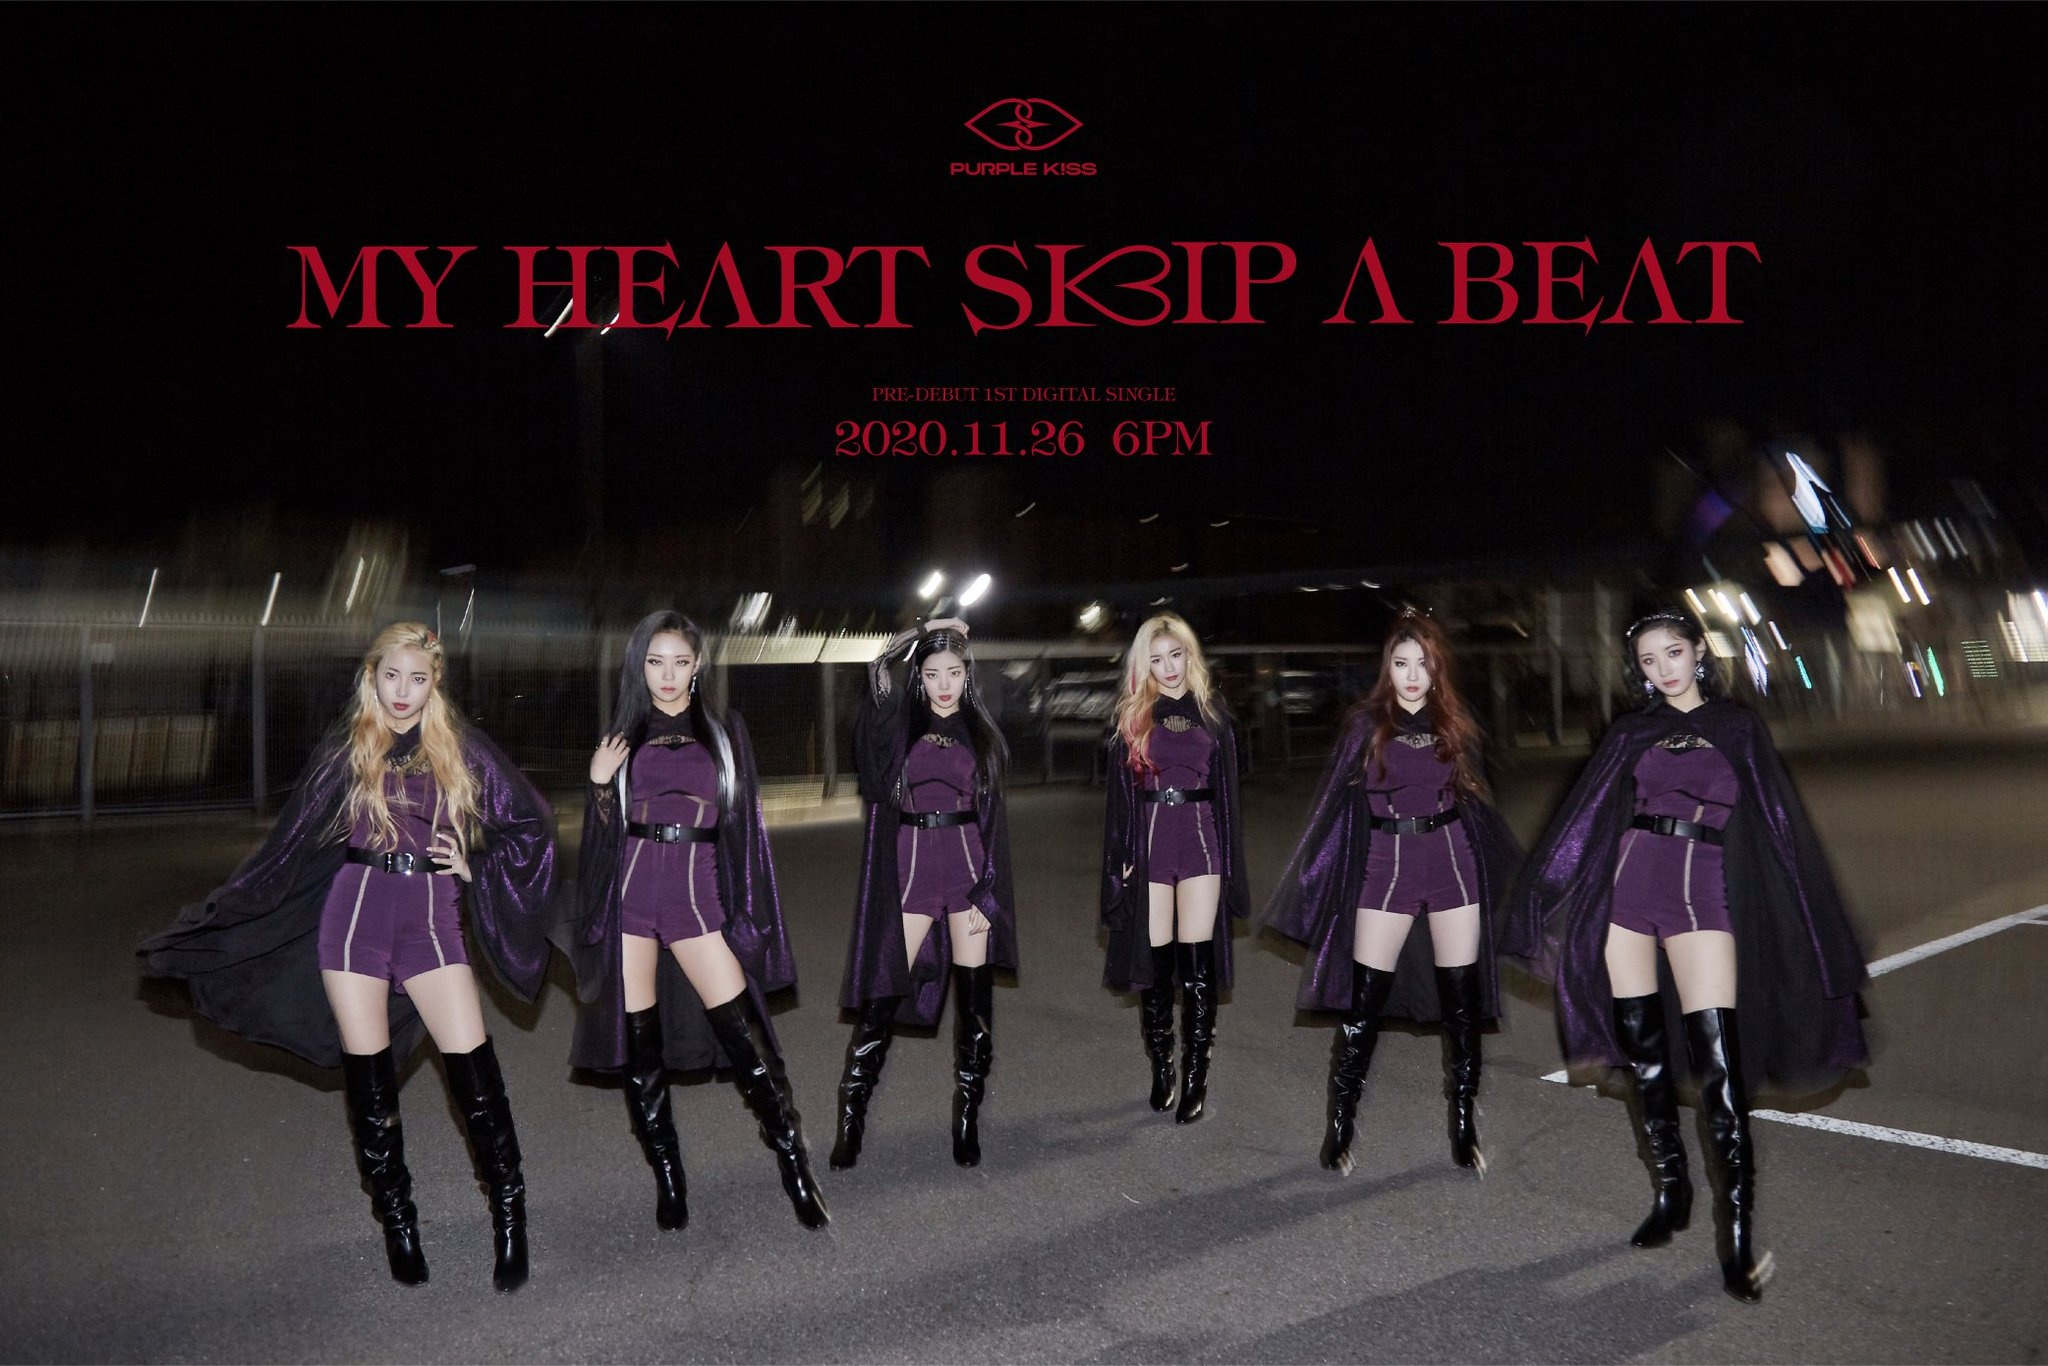 Purple Kiss My Heart Skip A Beat Performance Mv Kpop In The U S They debuted on september 21st. beat performance mv kpop